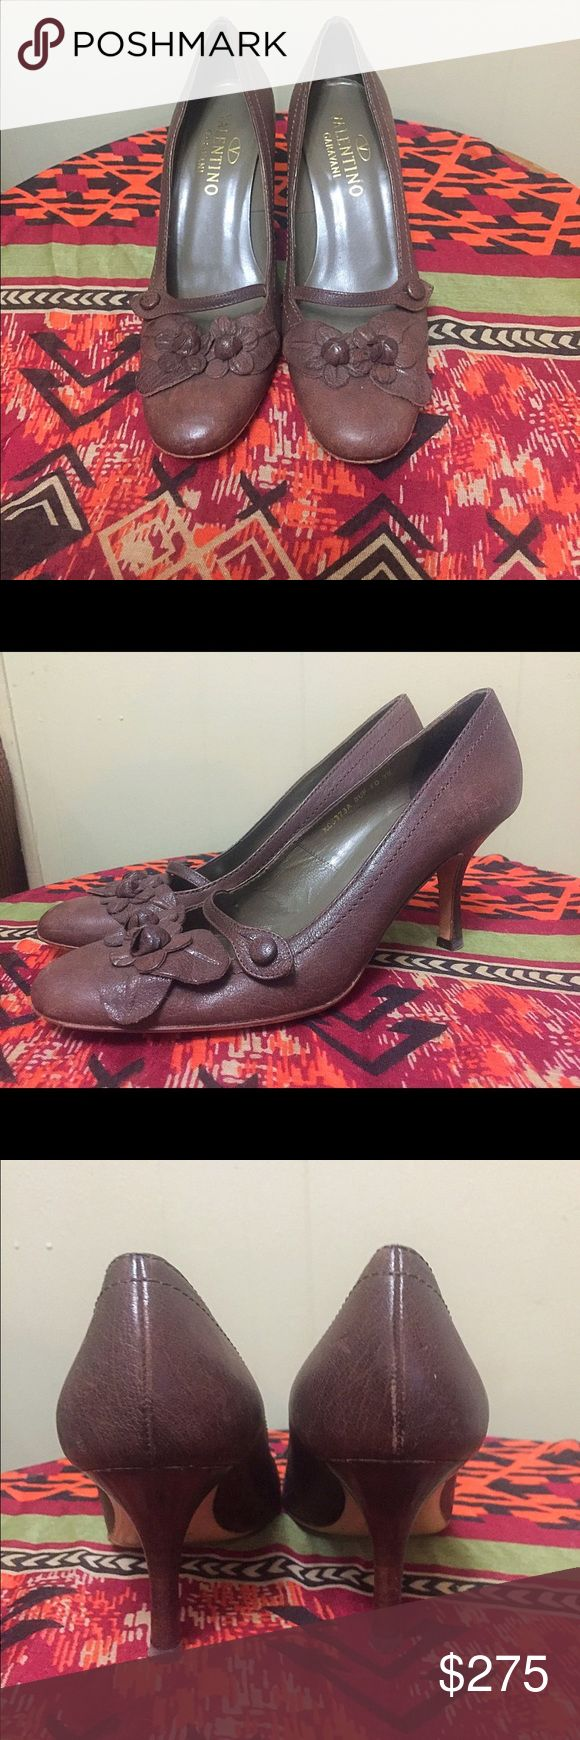 Vintage Valentino Brown Heels Absolutely gorgeous Valentino Garavani Brown Leather heels.Theres small strap with button secure your foot into the shoe. Leather flowers sit on the top of each shoe. The insoles are in excellent conditions with little signs of wear. There is some scuffing on the bottom of shoe displayed in pictures. These are in Excellent used condition. Women's size 38 Us 8 From a smoke free home. Valentino Shoes Heels